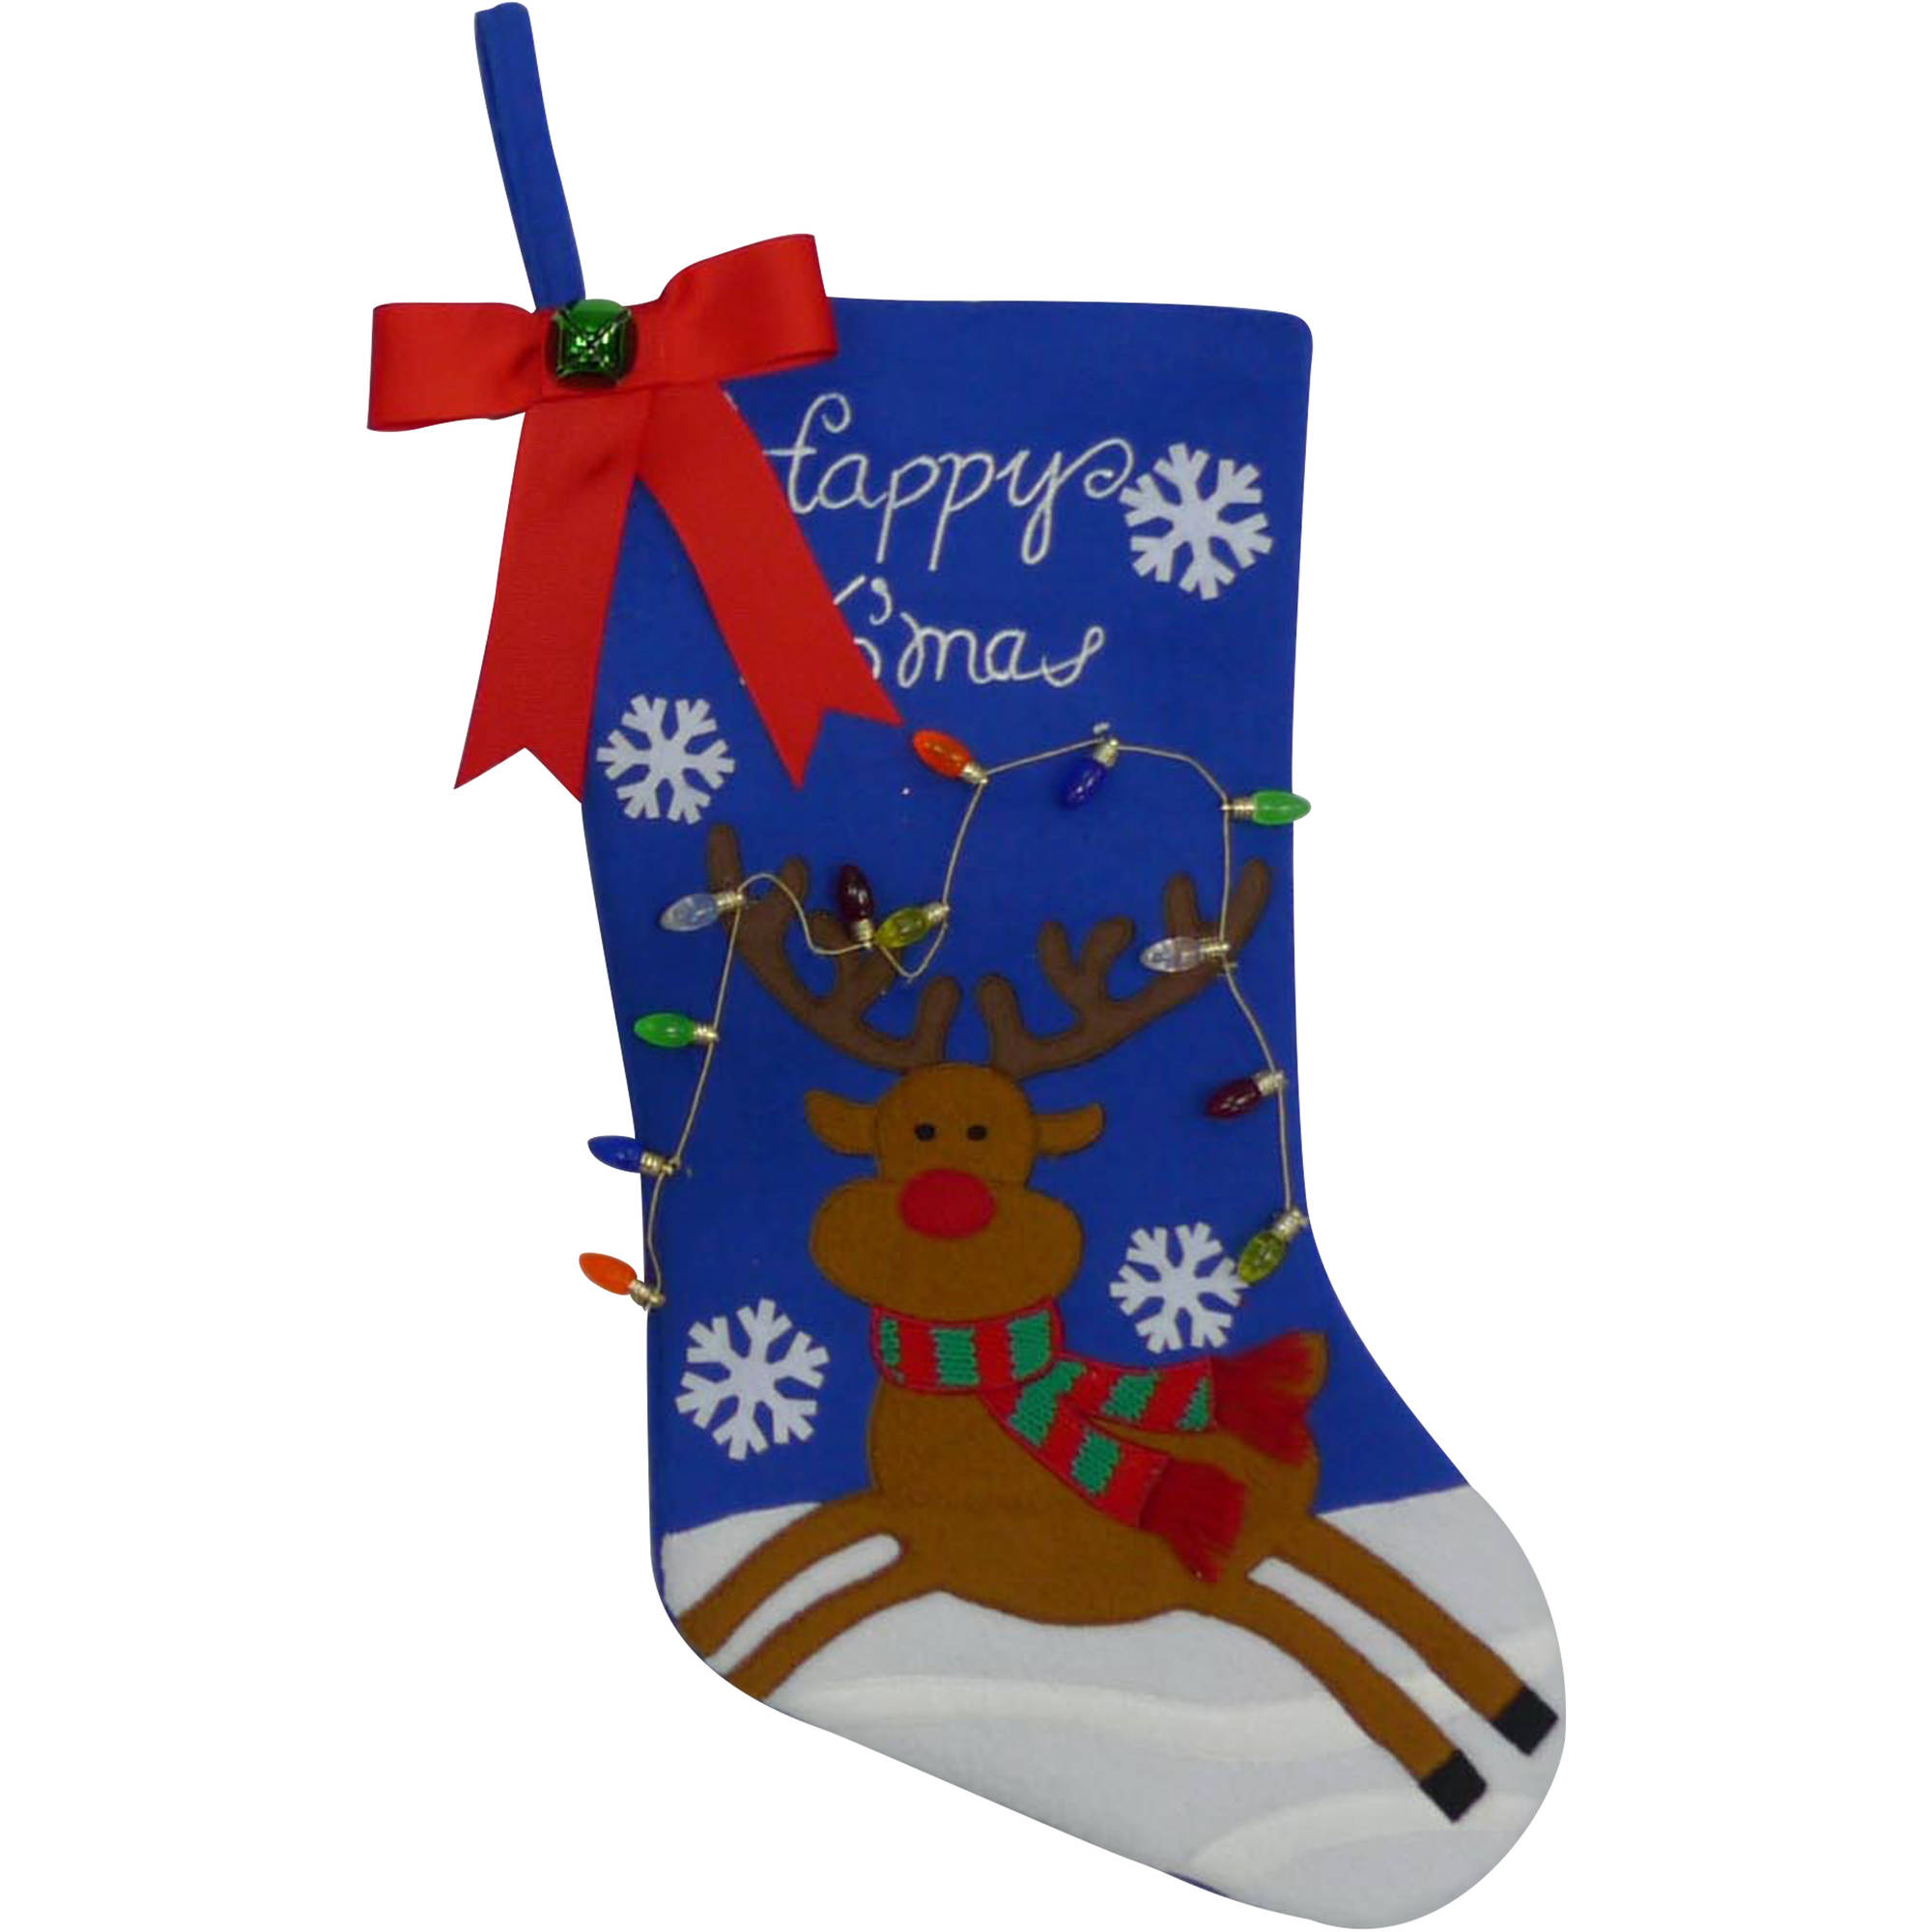 Blue Christmas Stockings - Walmart.com